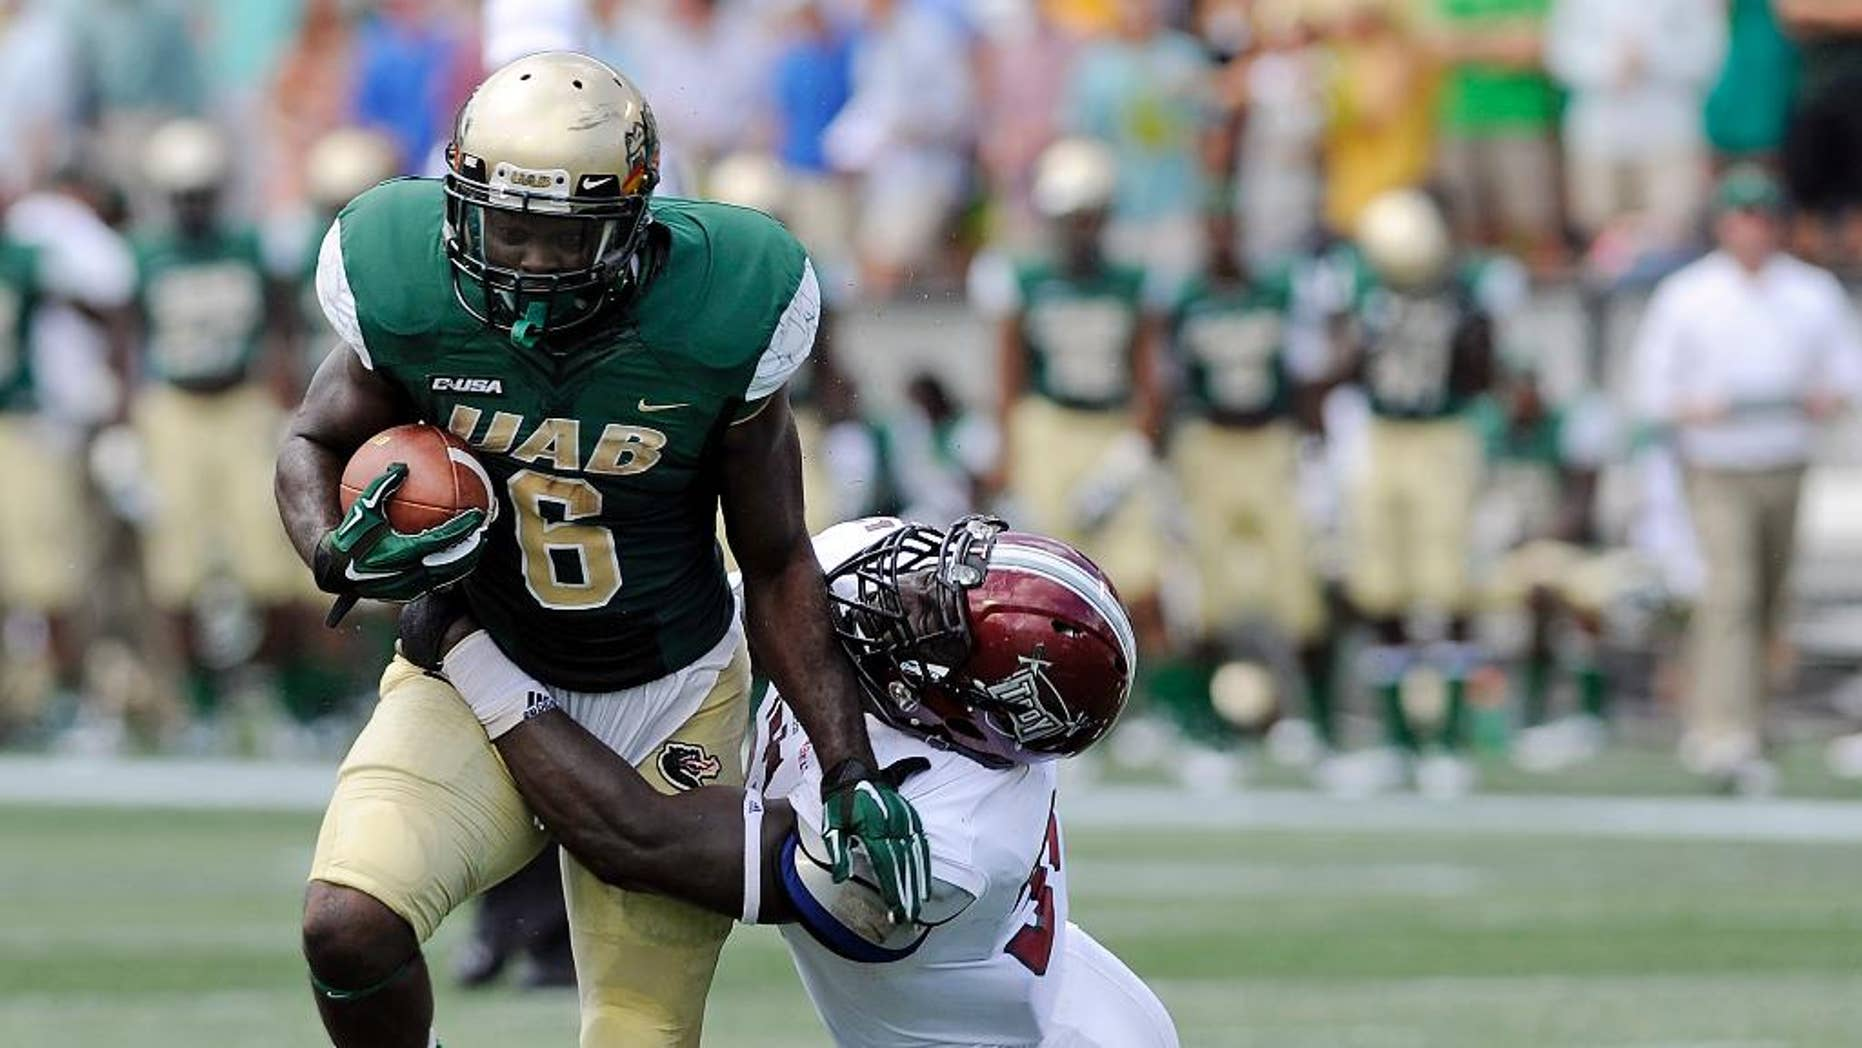 UAB running back D.J. Vinson (6) attempts to break away from Troy linebacker Mark Wilson (35) during the first half an NCAA college football in Birmingham, Ala.,  Saturday, Aug. 30, 2014. (AP Photo/The (Troy) Messenger, Thomas Graning)